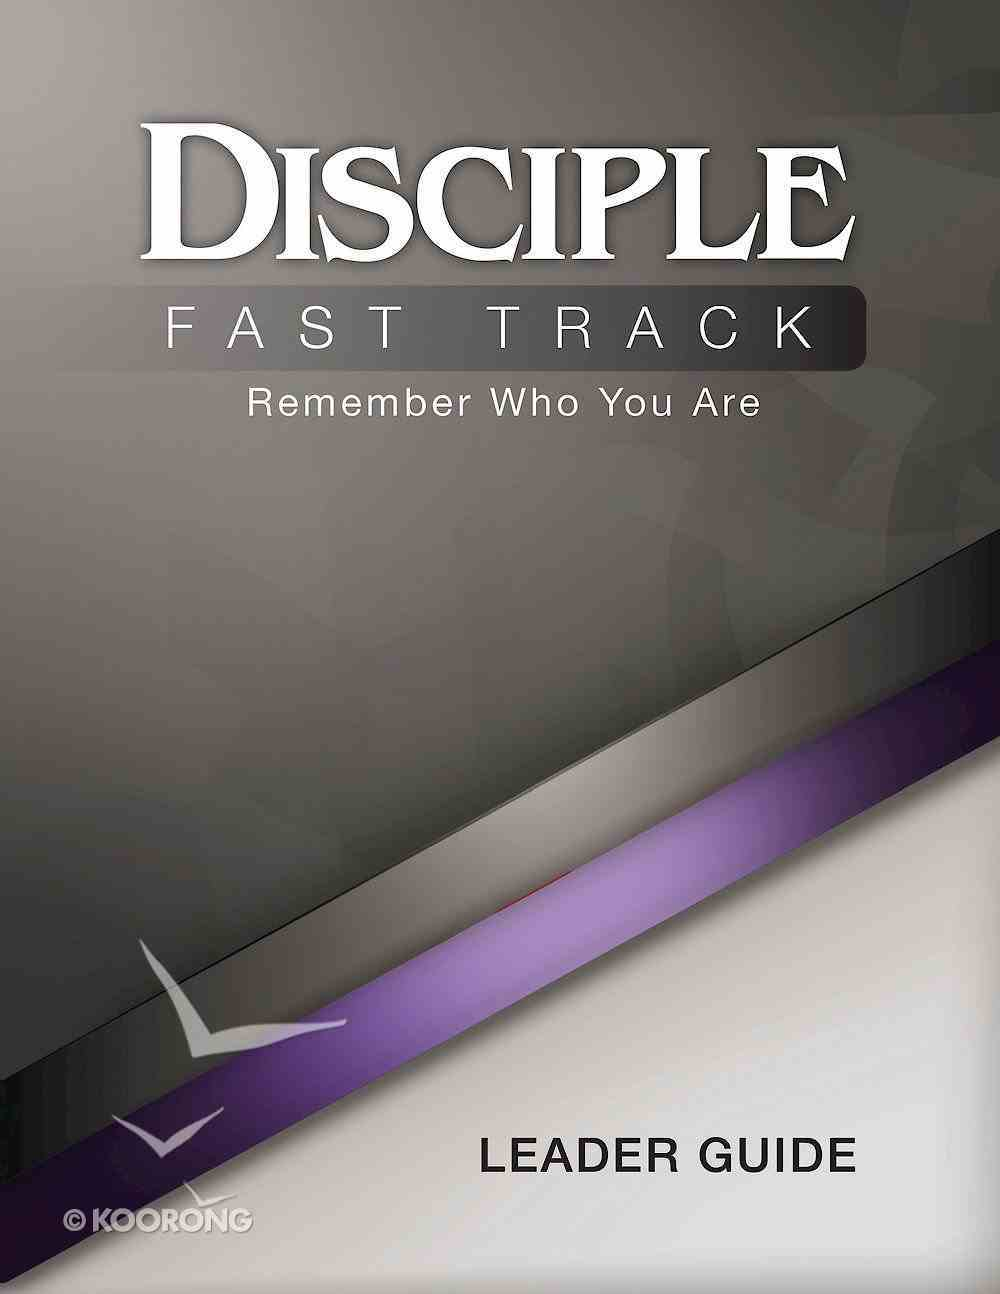 Disciple Fast Track Remember Who You Are (Leader Guide) eBook